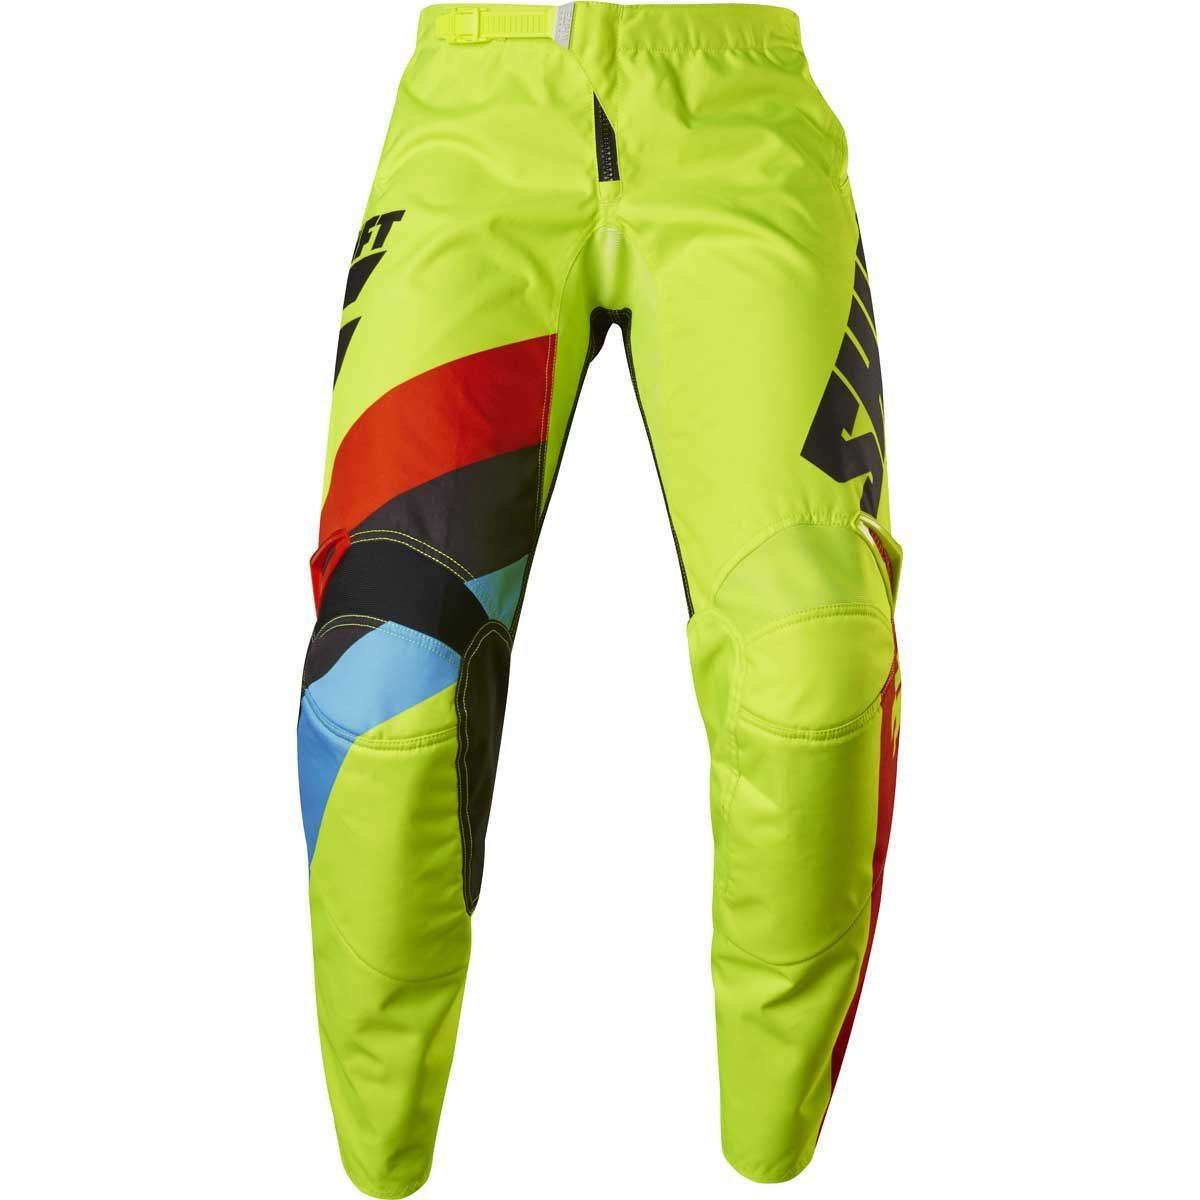 Shift Racing Whit3 Label Tarmac Youth Boys MX Motorcycle Pants - Flo Yellow/Size 24